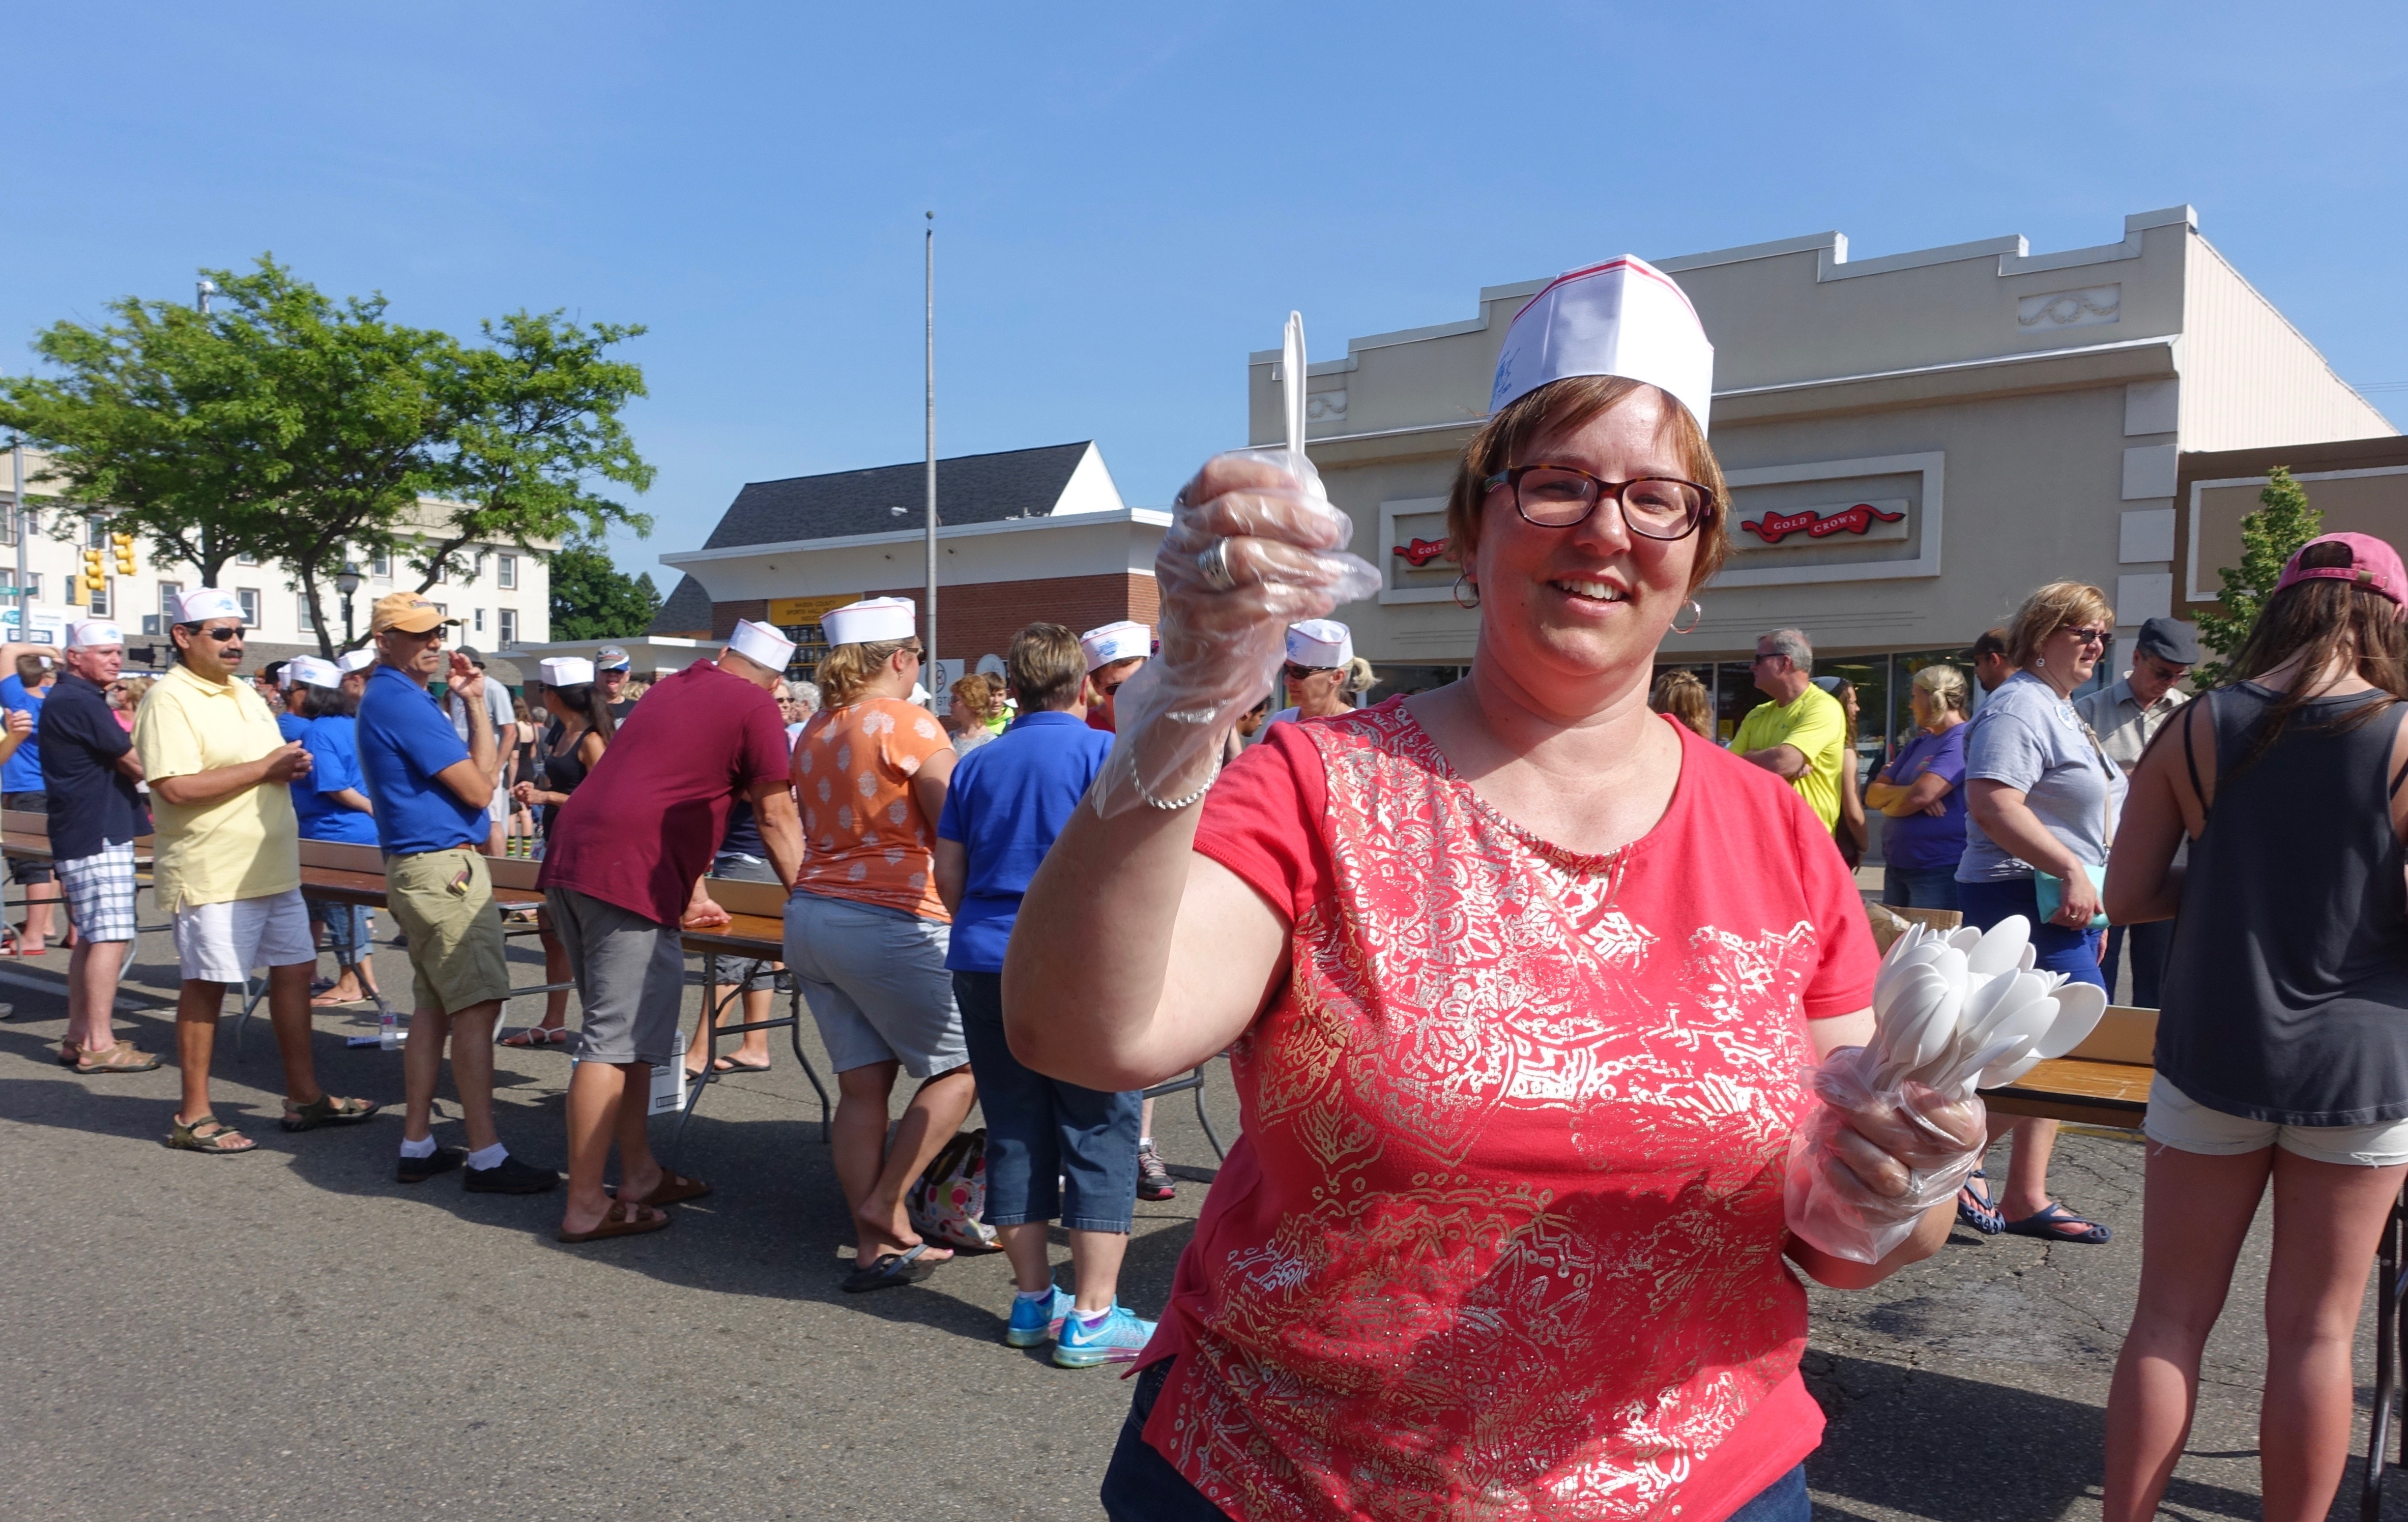 Spoon lady at Ludington's World's Largest Sundae Attempt